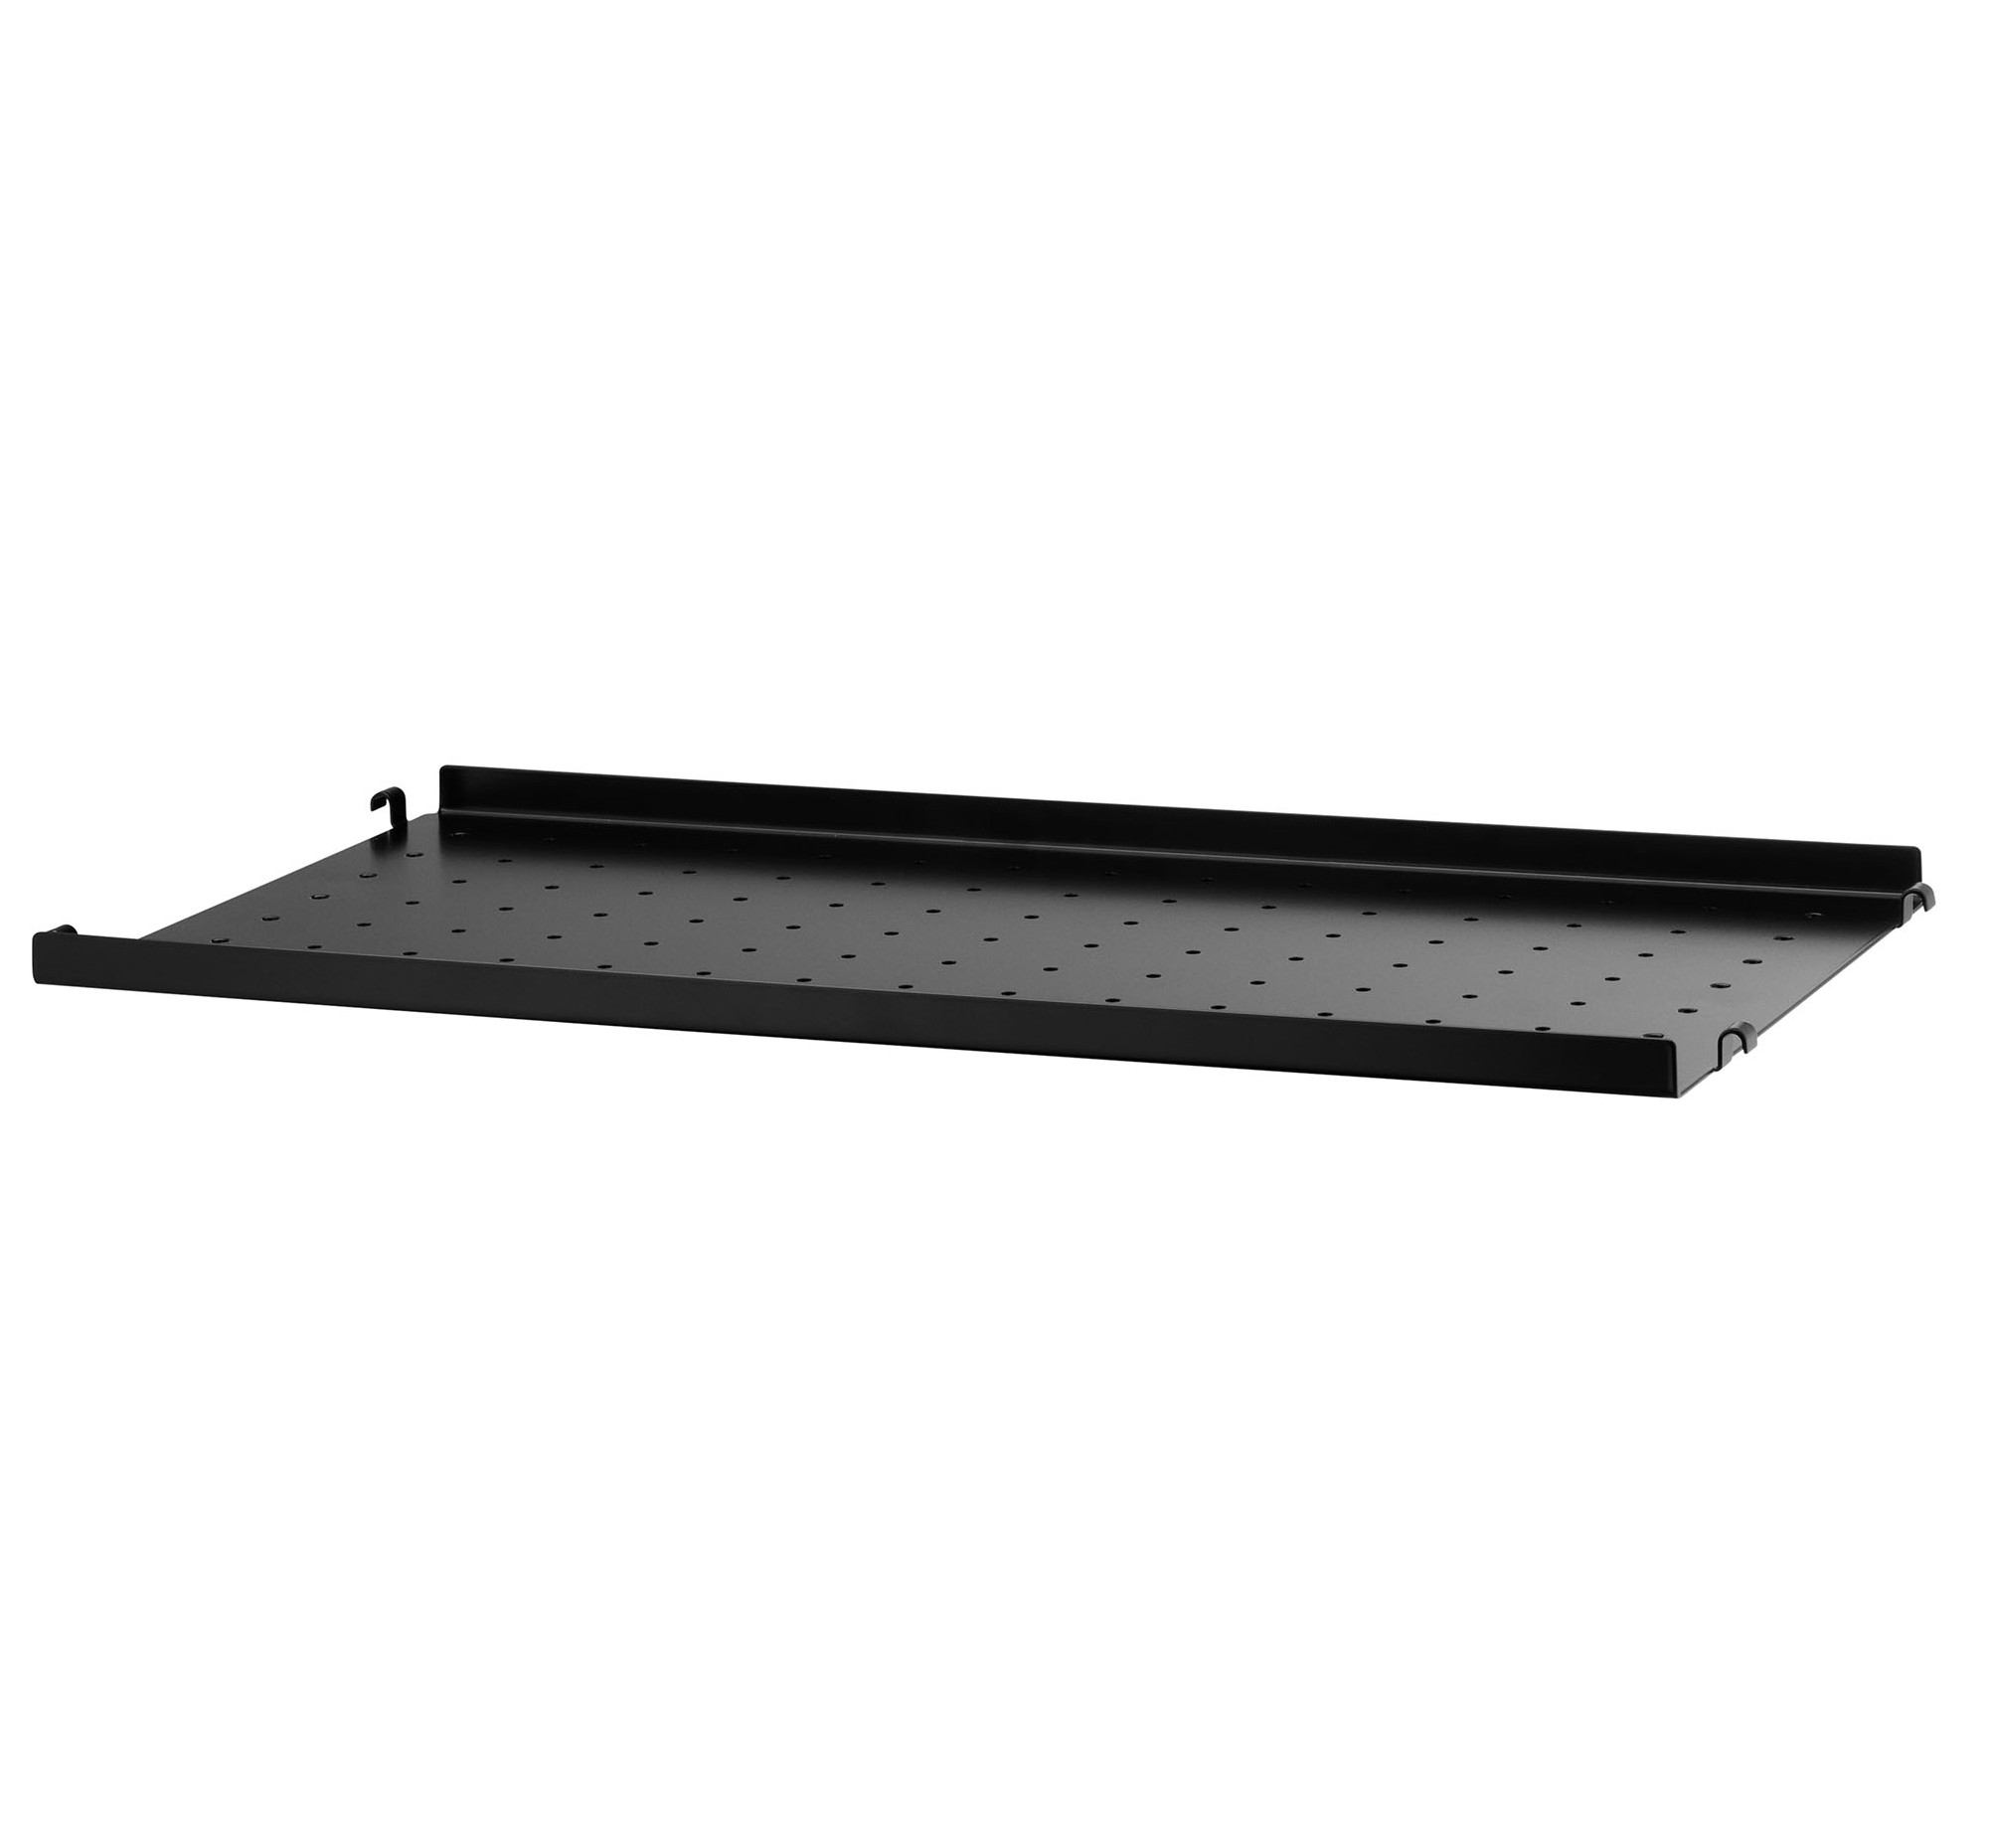 String Metal Shelf 58 x 30 x 2cm